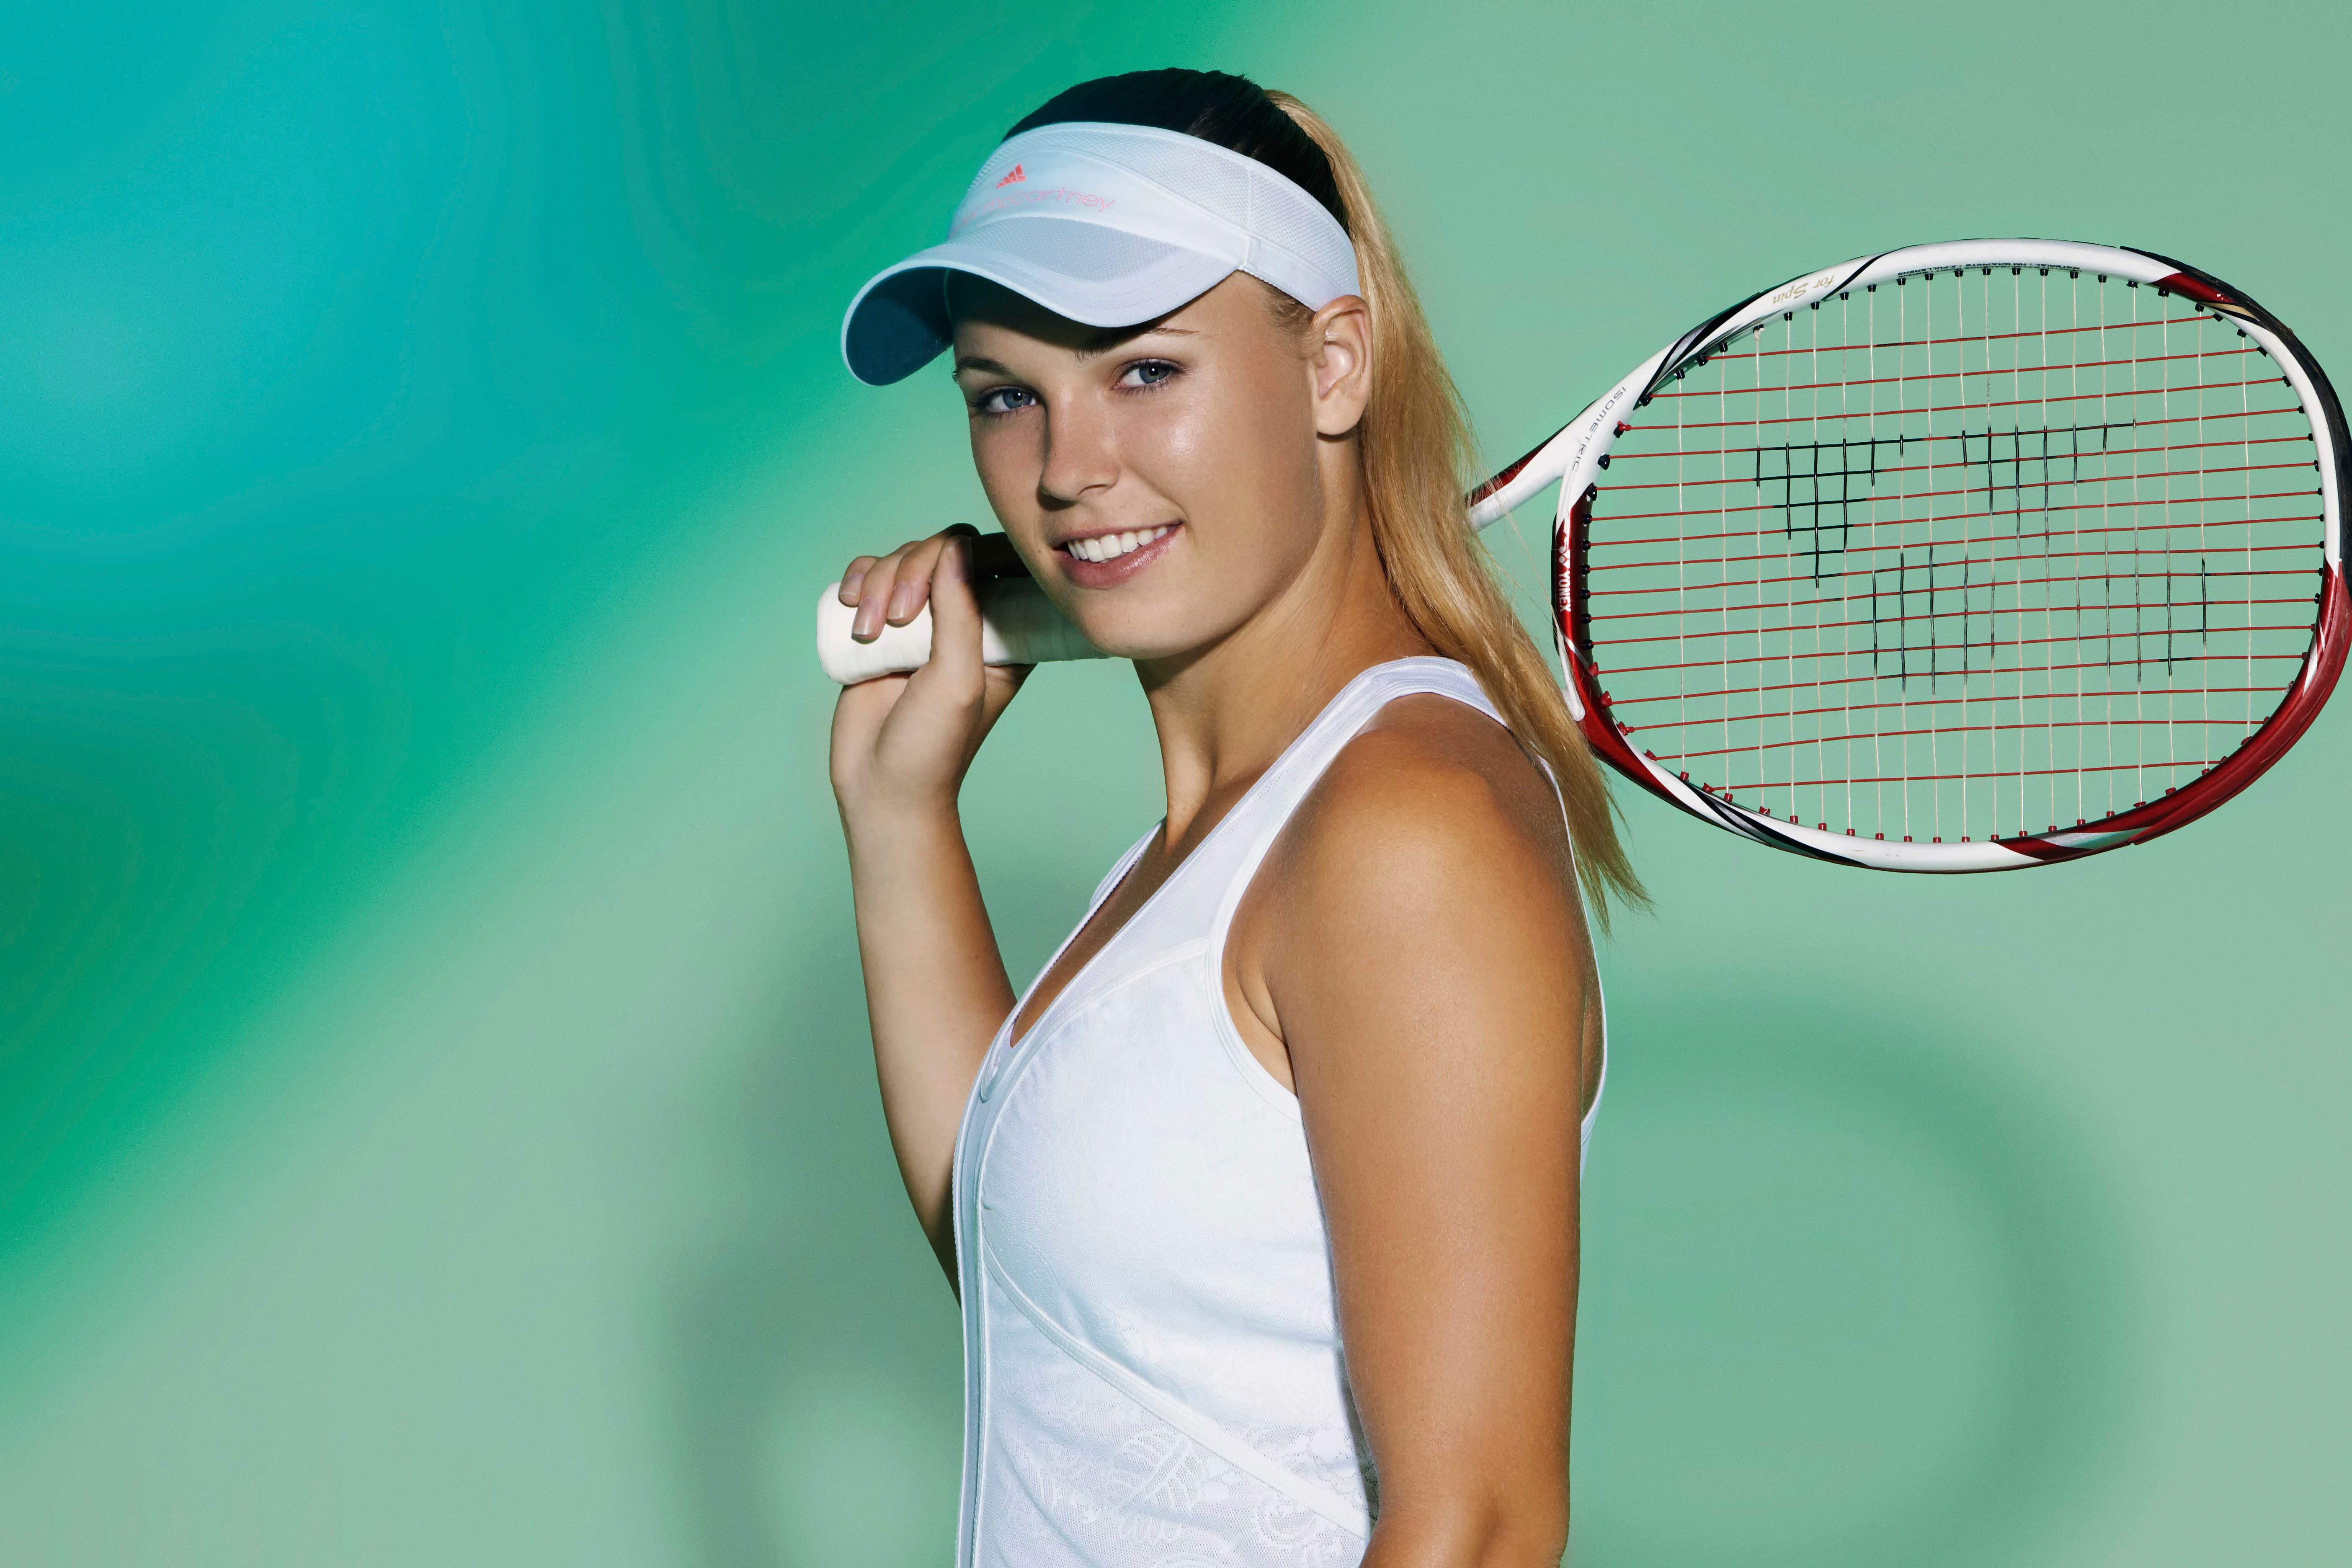 15 Hd Caroline Wozniacki Wallpapers-9171